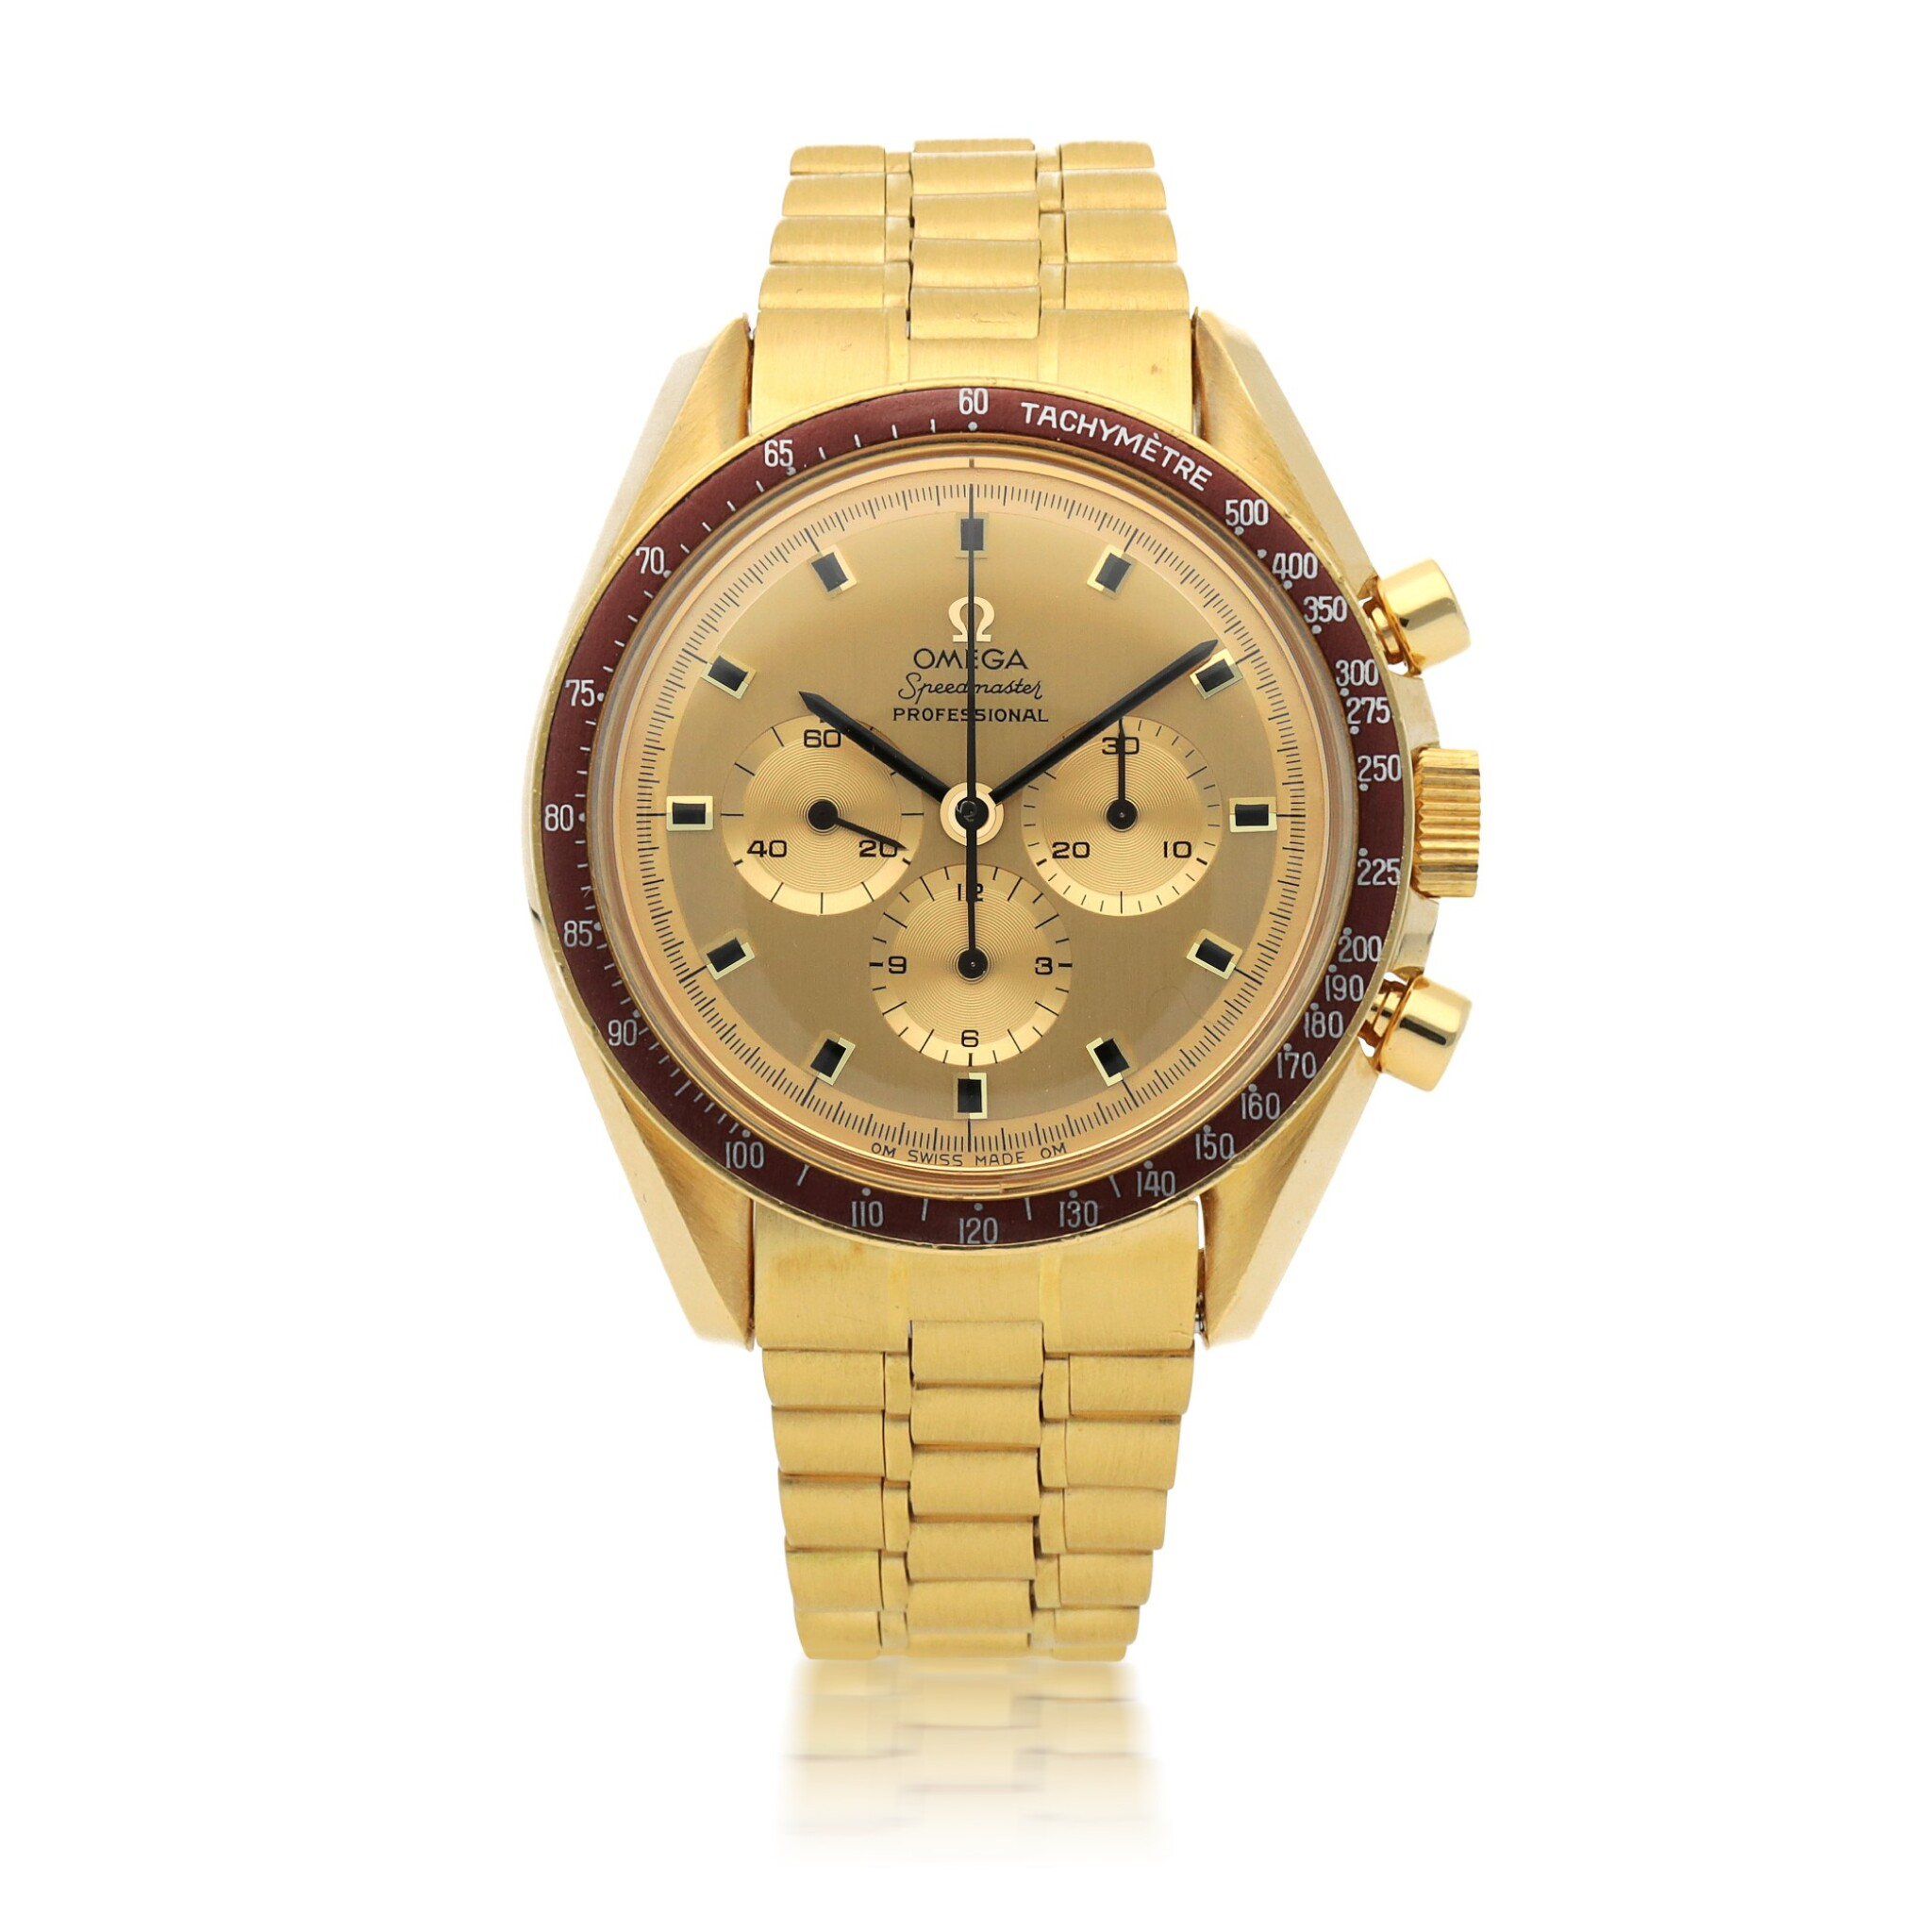 View full screen - View 1 of Lot 371. SPEEDMASTER APOLLO XI, REF 145.022-69 YELLOW GOLD CHRONOGRAPH WRISTWATCH WITH BRACELET MADE IN 1970.